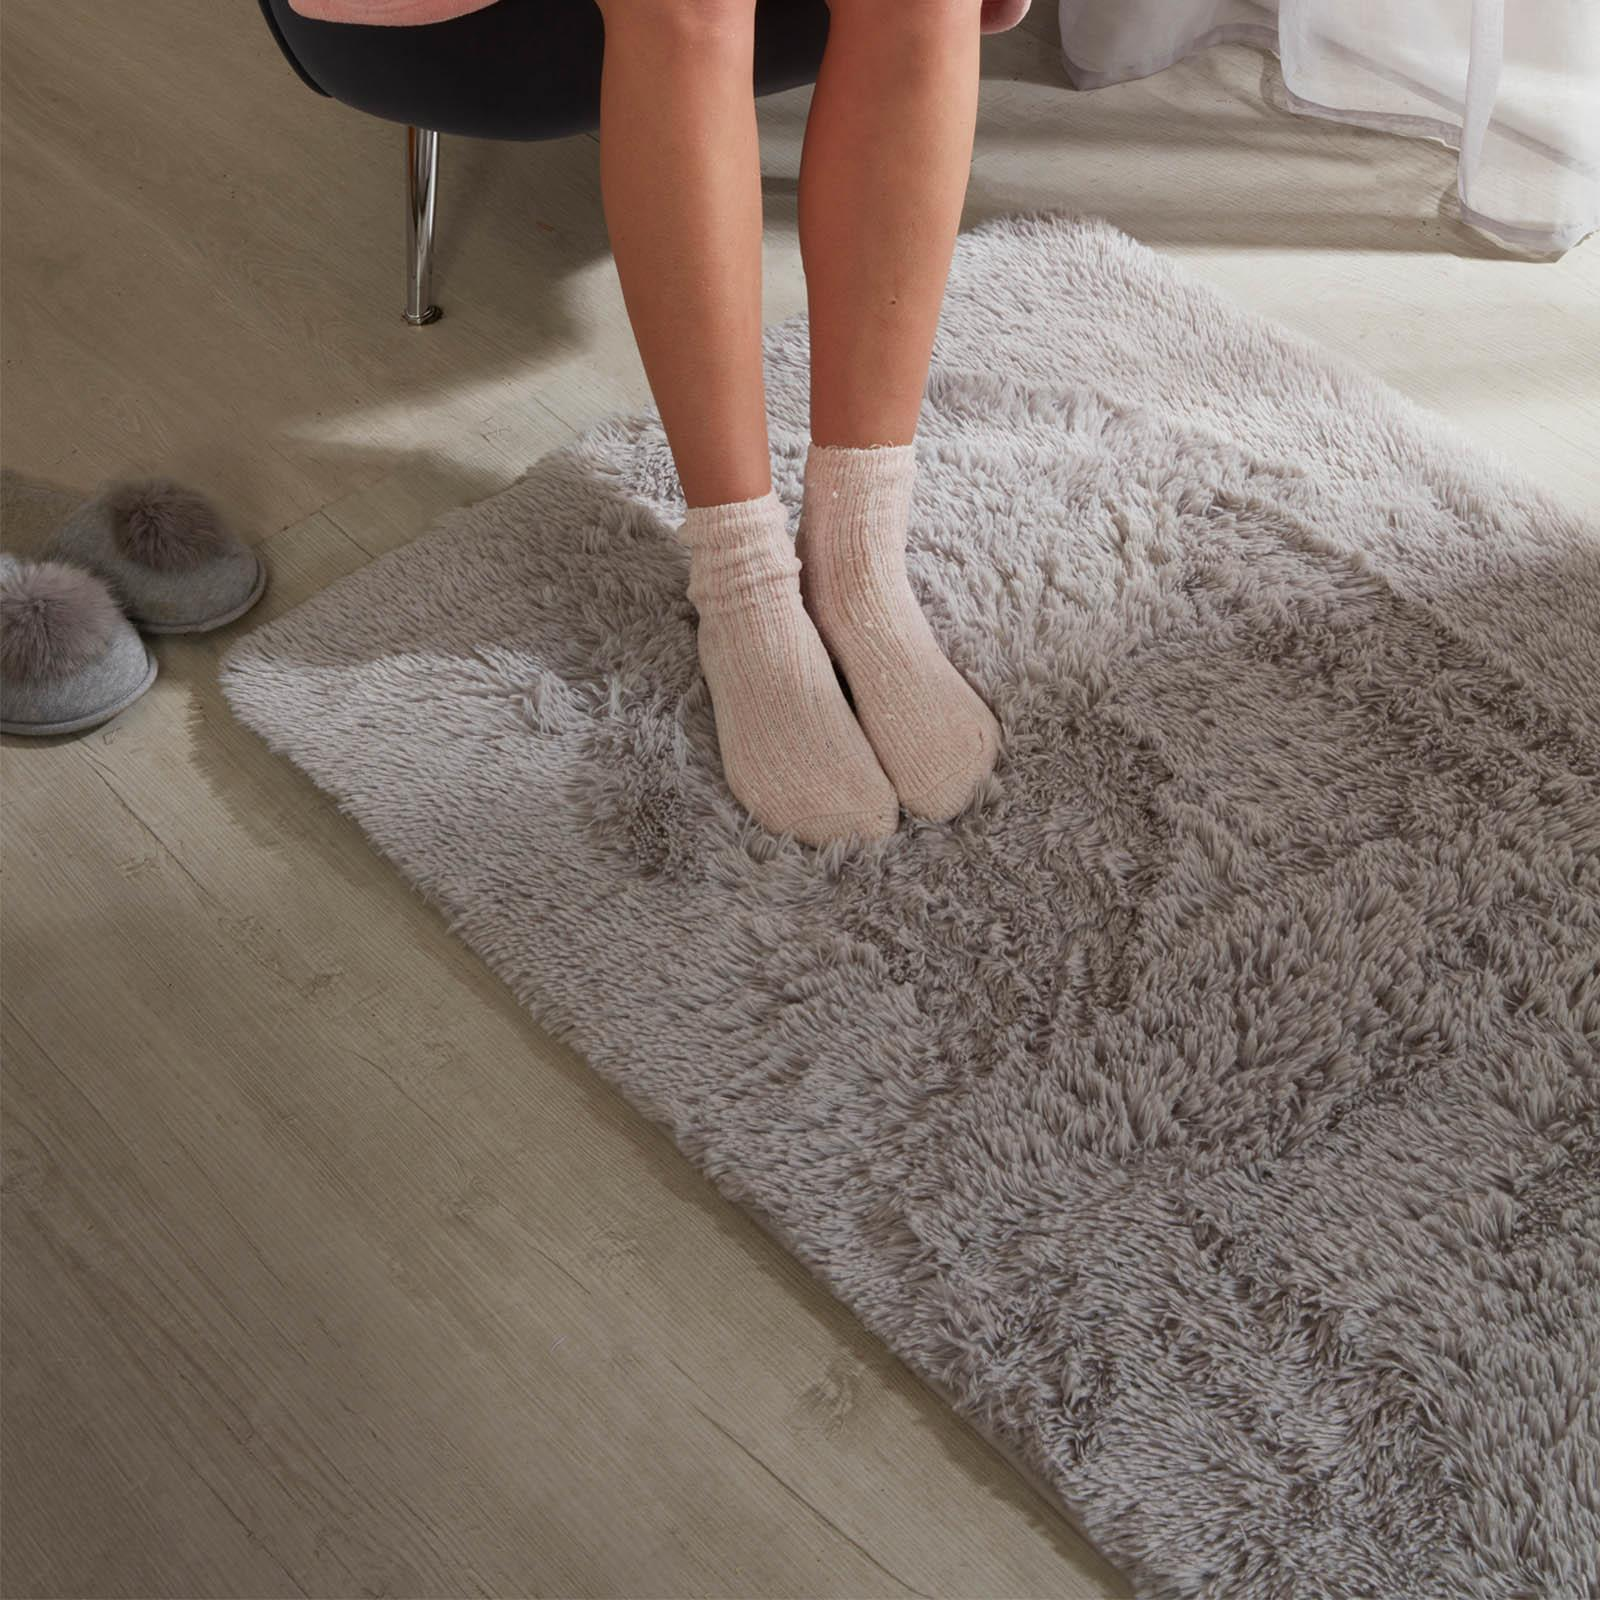 Sienna-Fluffy-Rug-Anti-Slip-Skid-Shaggy-Large-Bedroom-Non-Shed-Floor-Carpet-Mat thumbnail 10